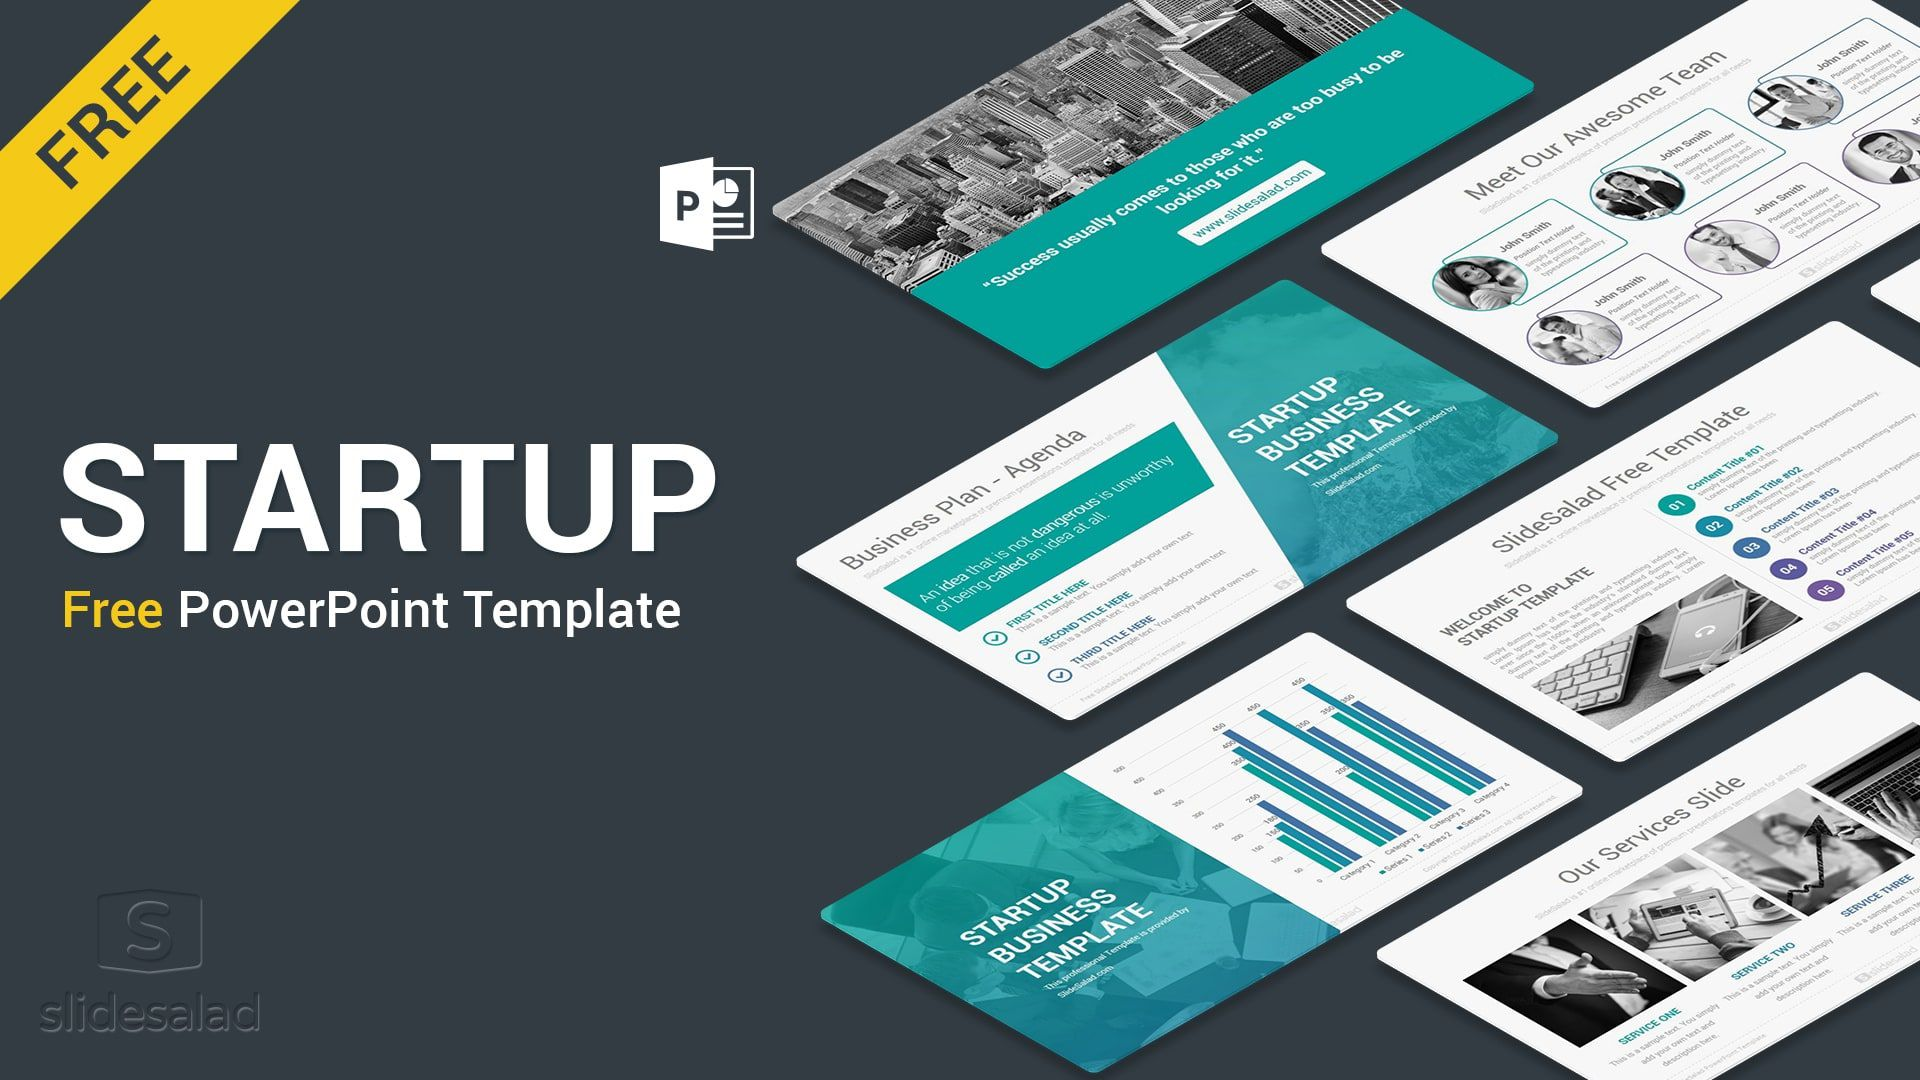 009 Formidable Startup Busines Plan Template Ppt Photo  FreeFull